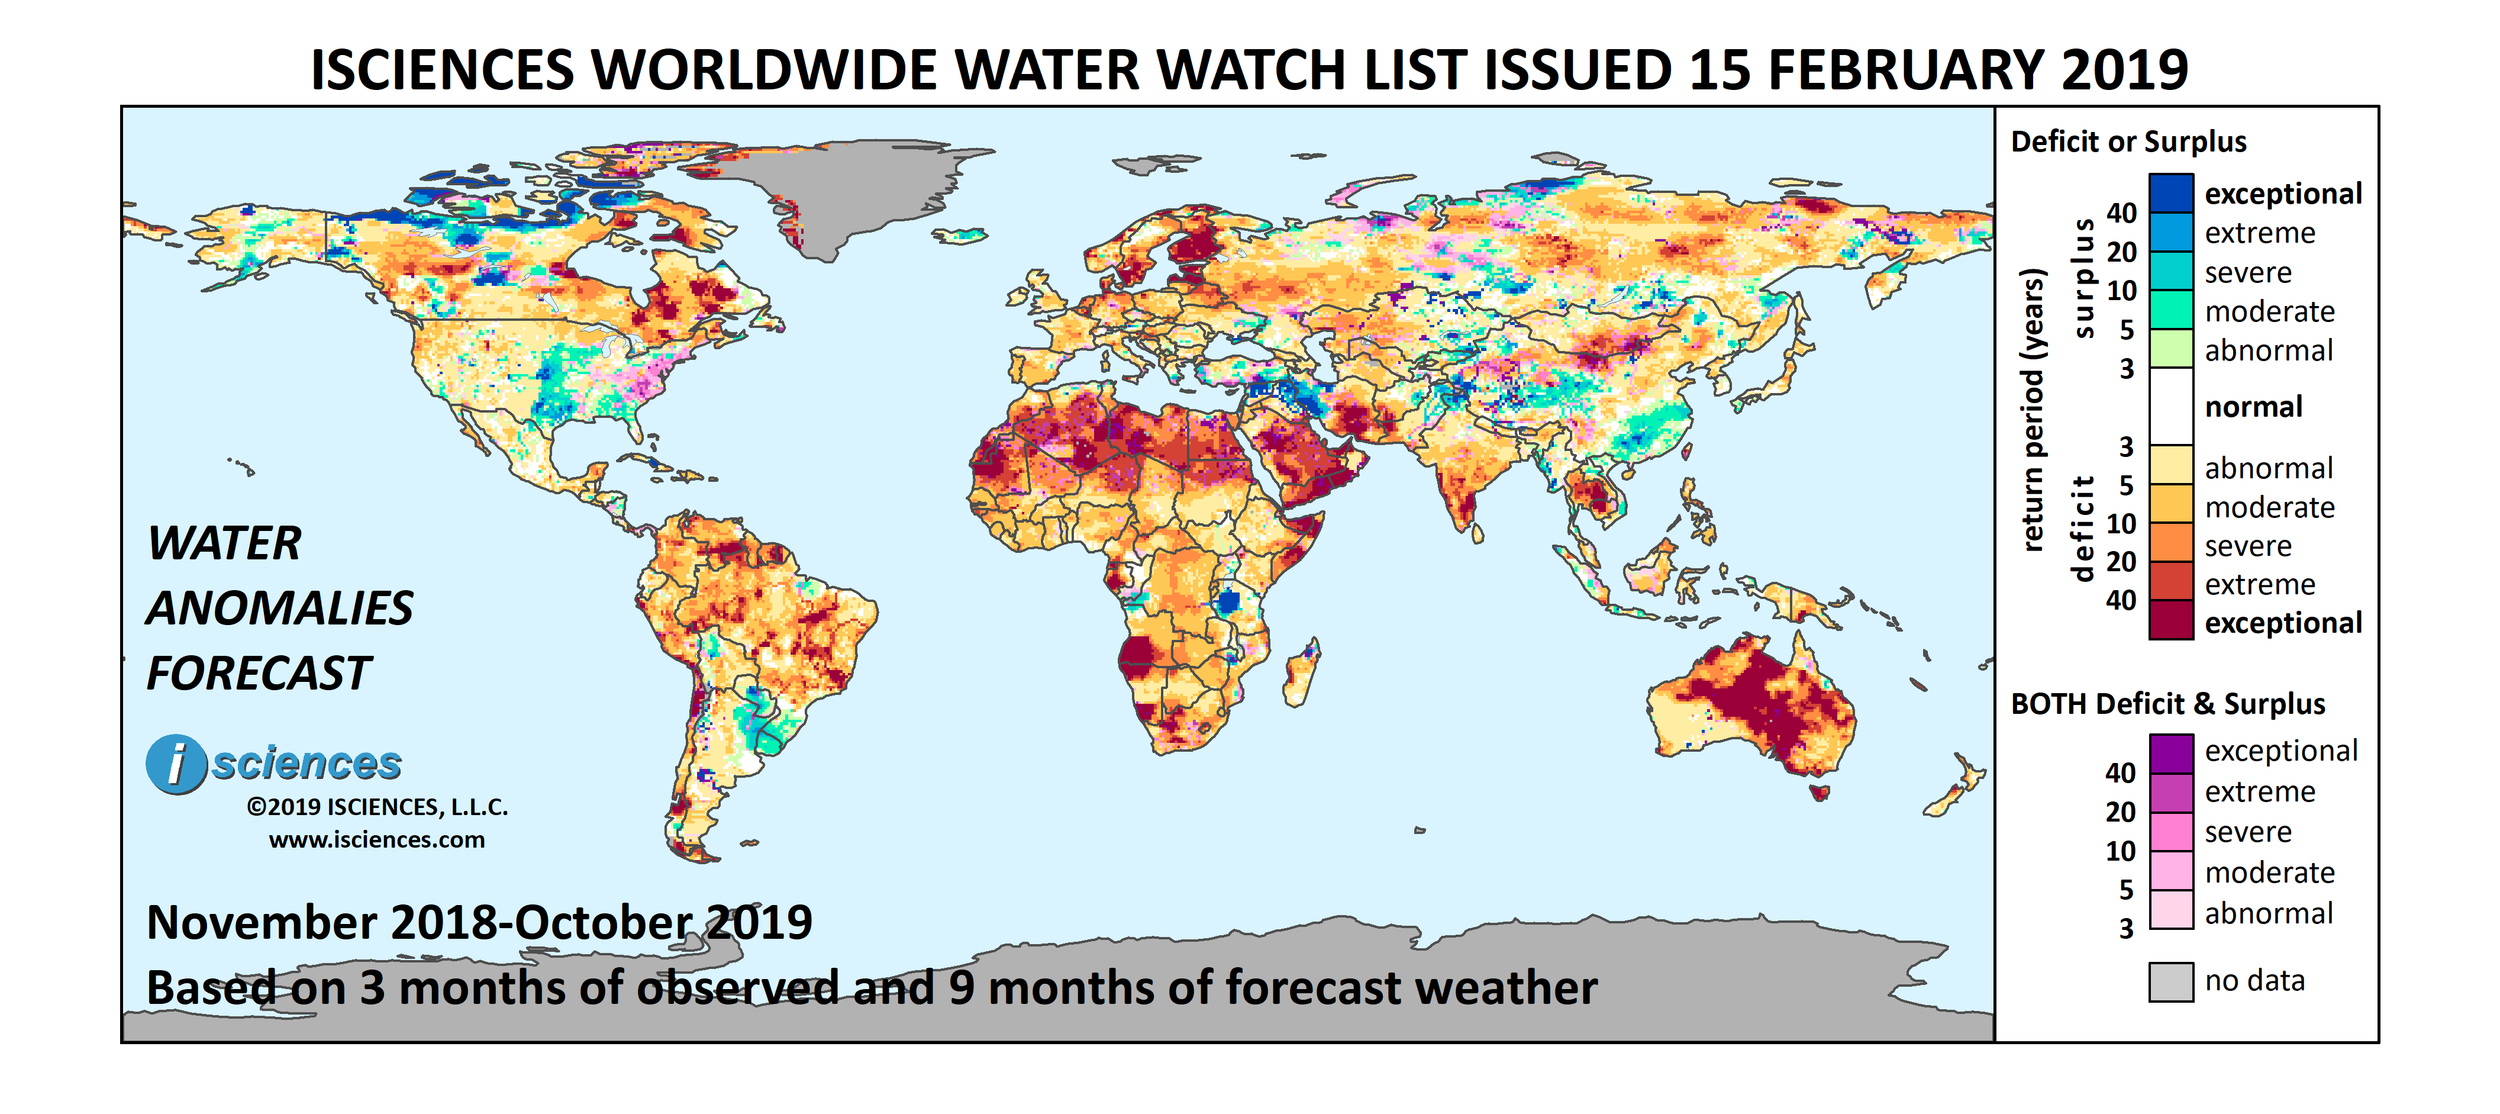 ISciences_Worldwide_Water_Watch_Lisa_2019_15February.png